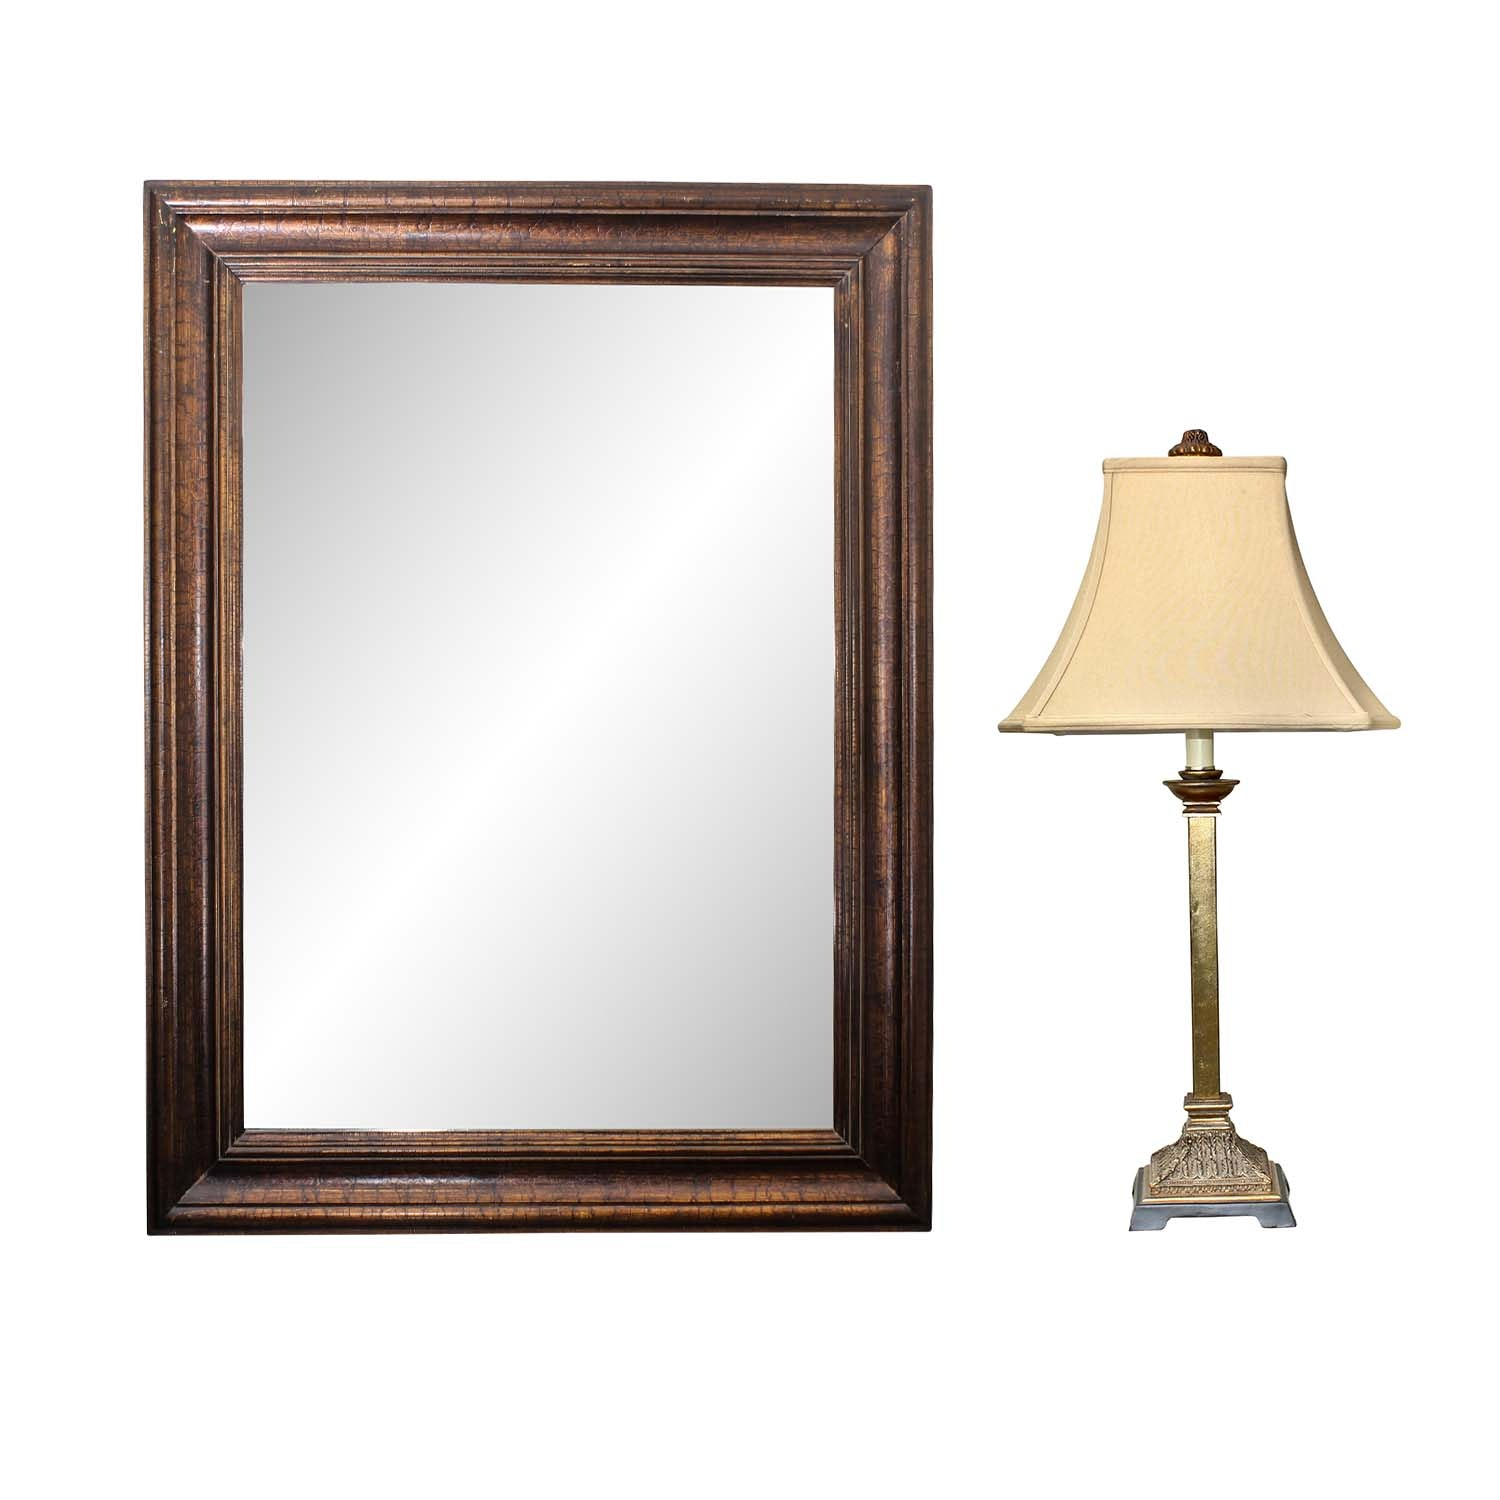 Decorative Wall Mirror and Lamp